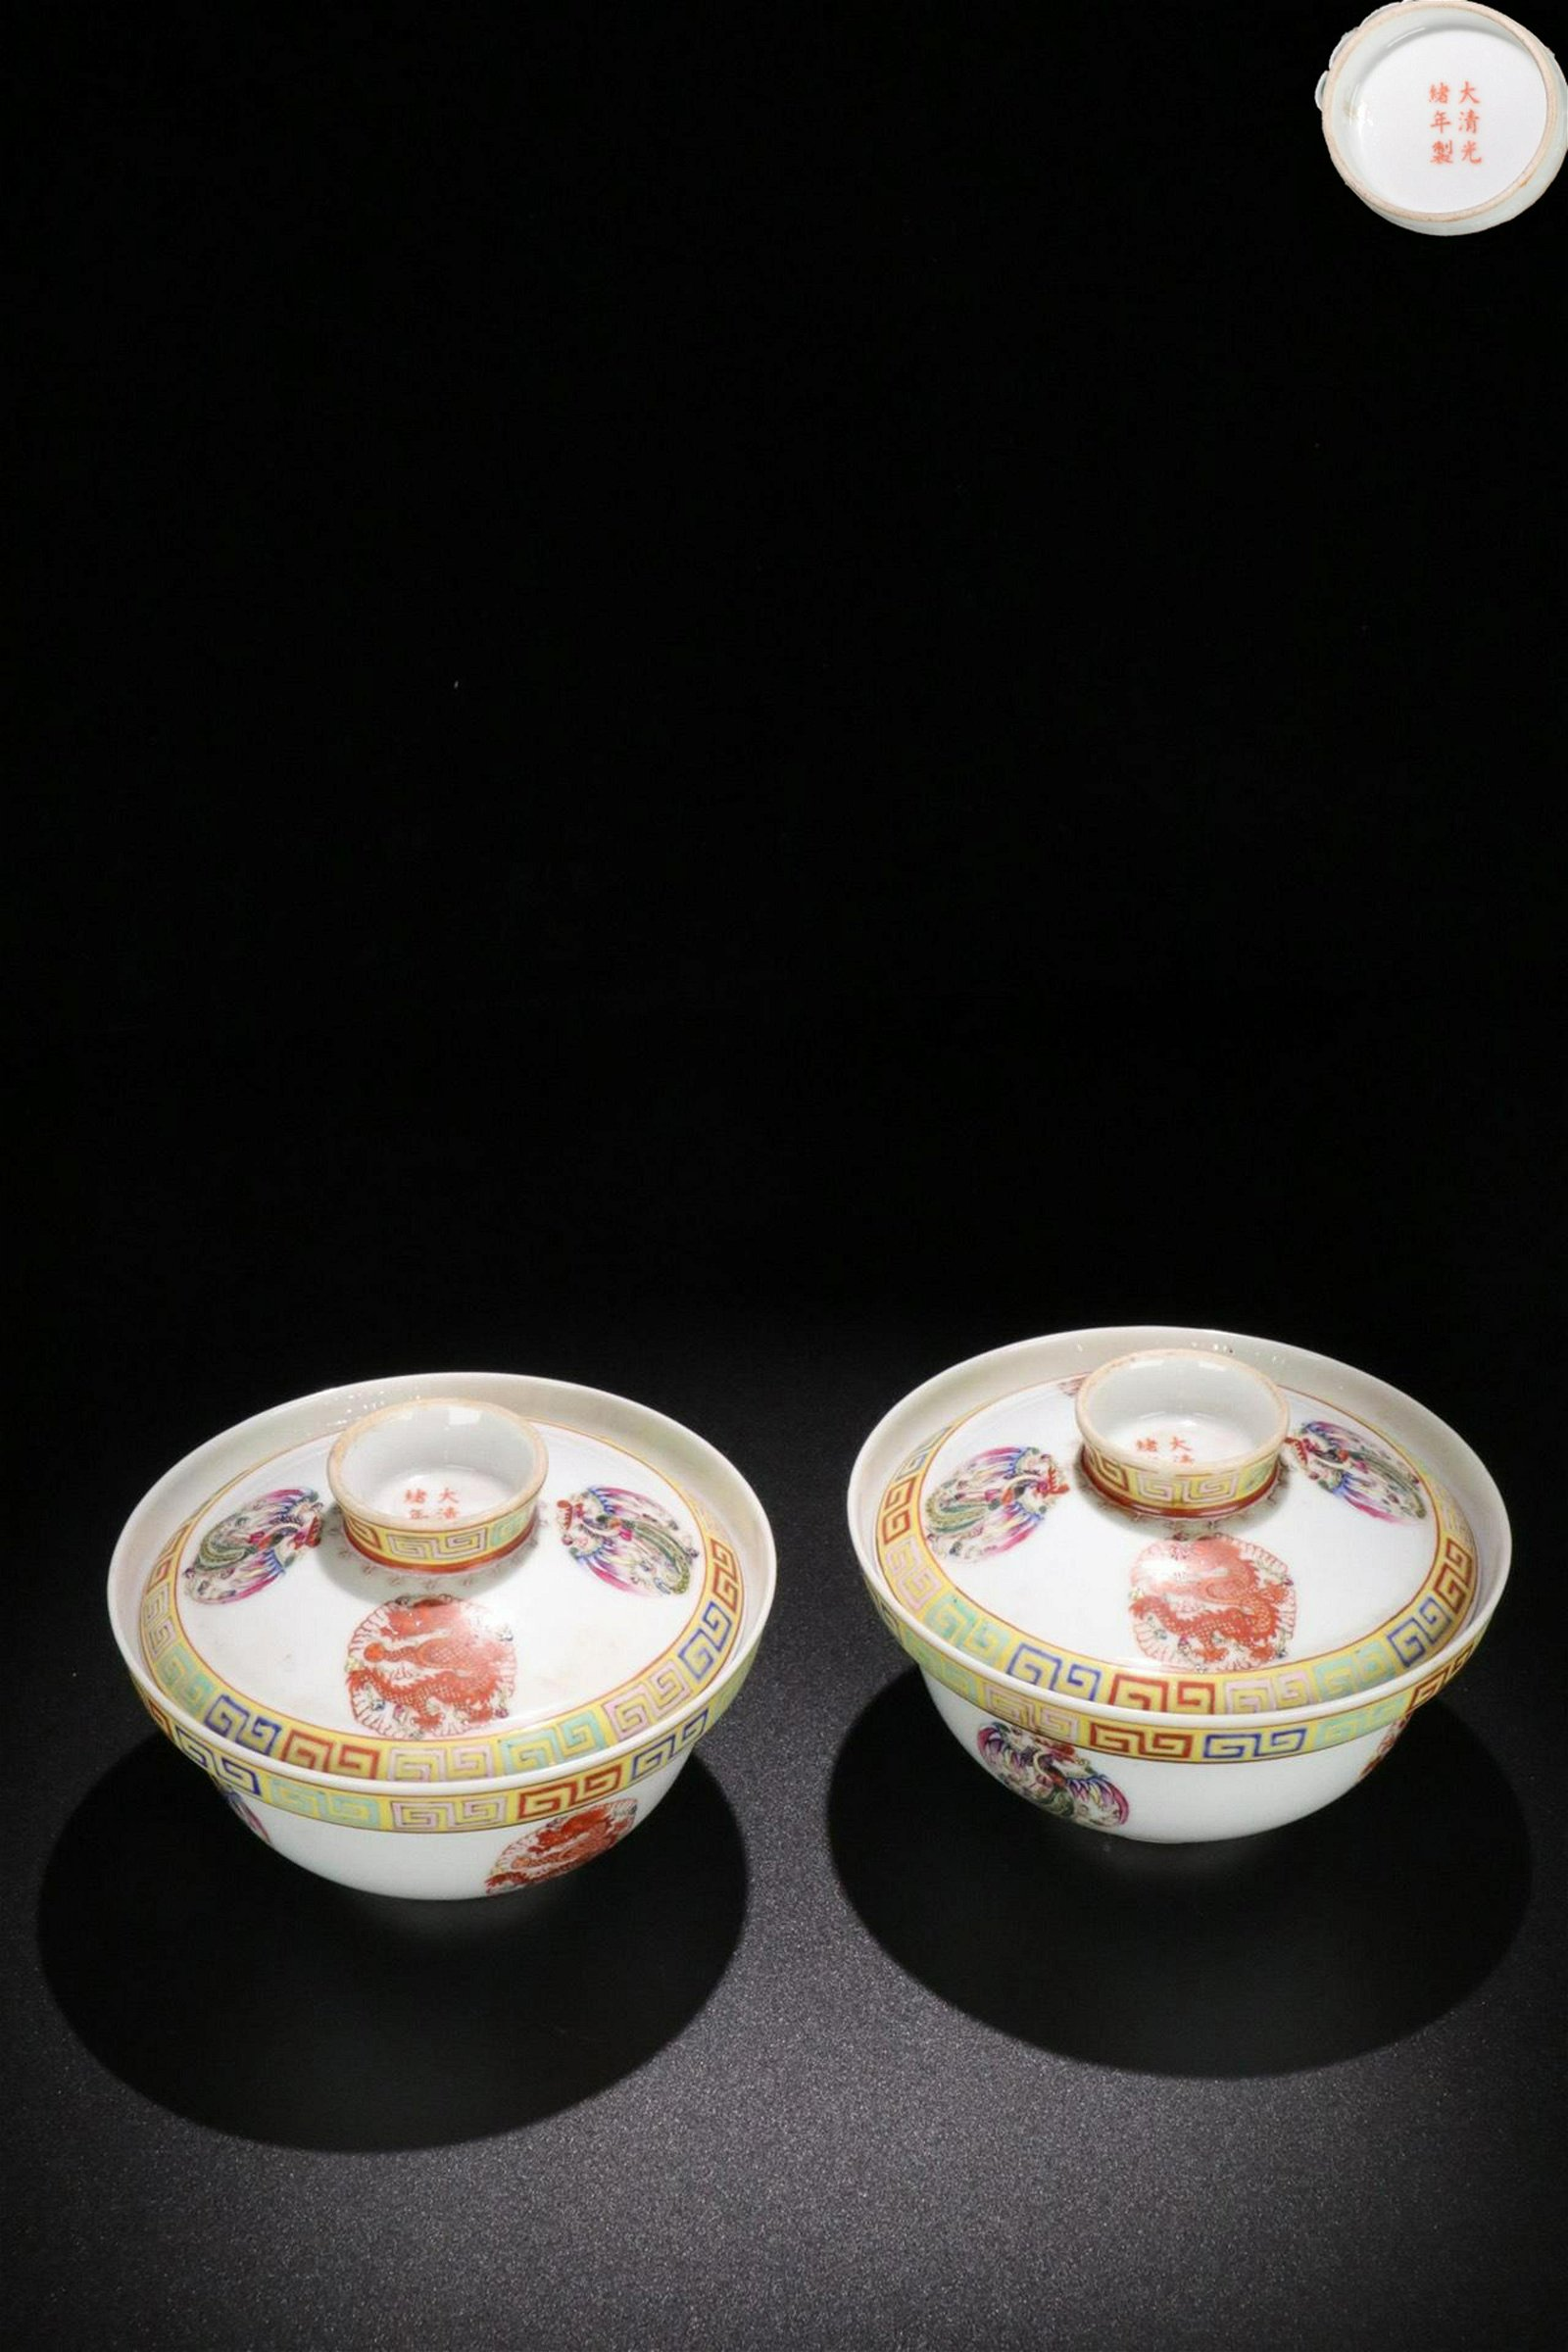 A PAIR OF FAMILLE ROSE DRAGON PHOENIX PATTERN BOWLS